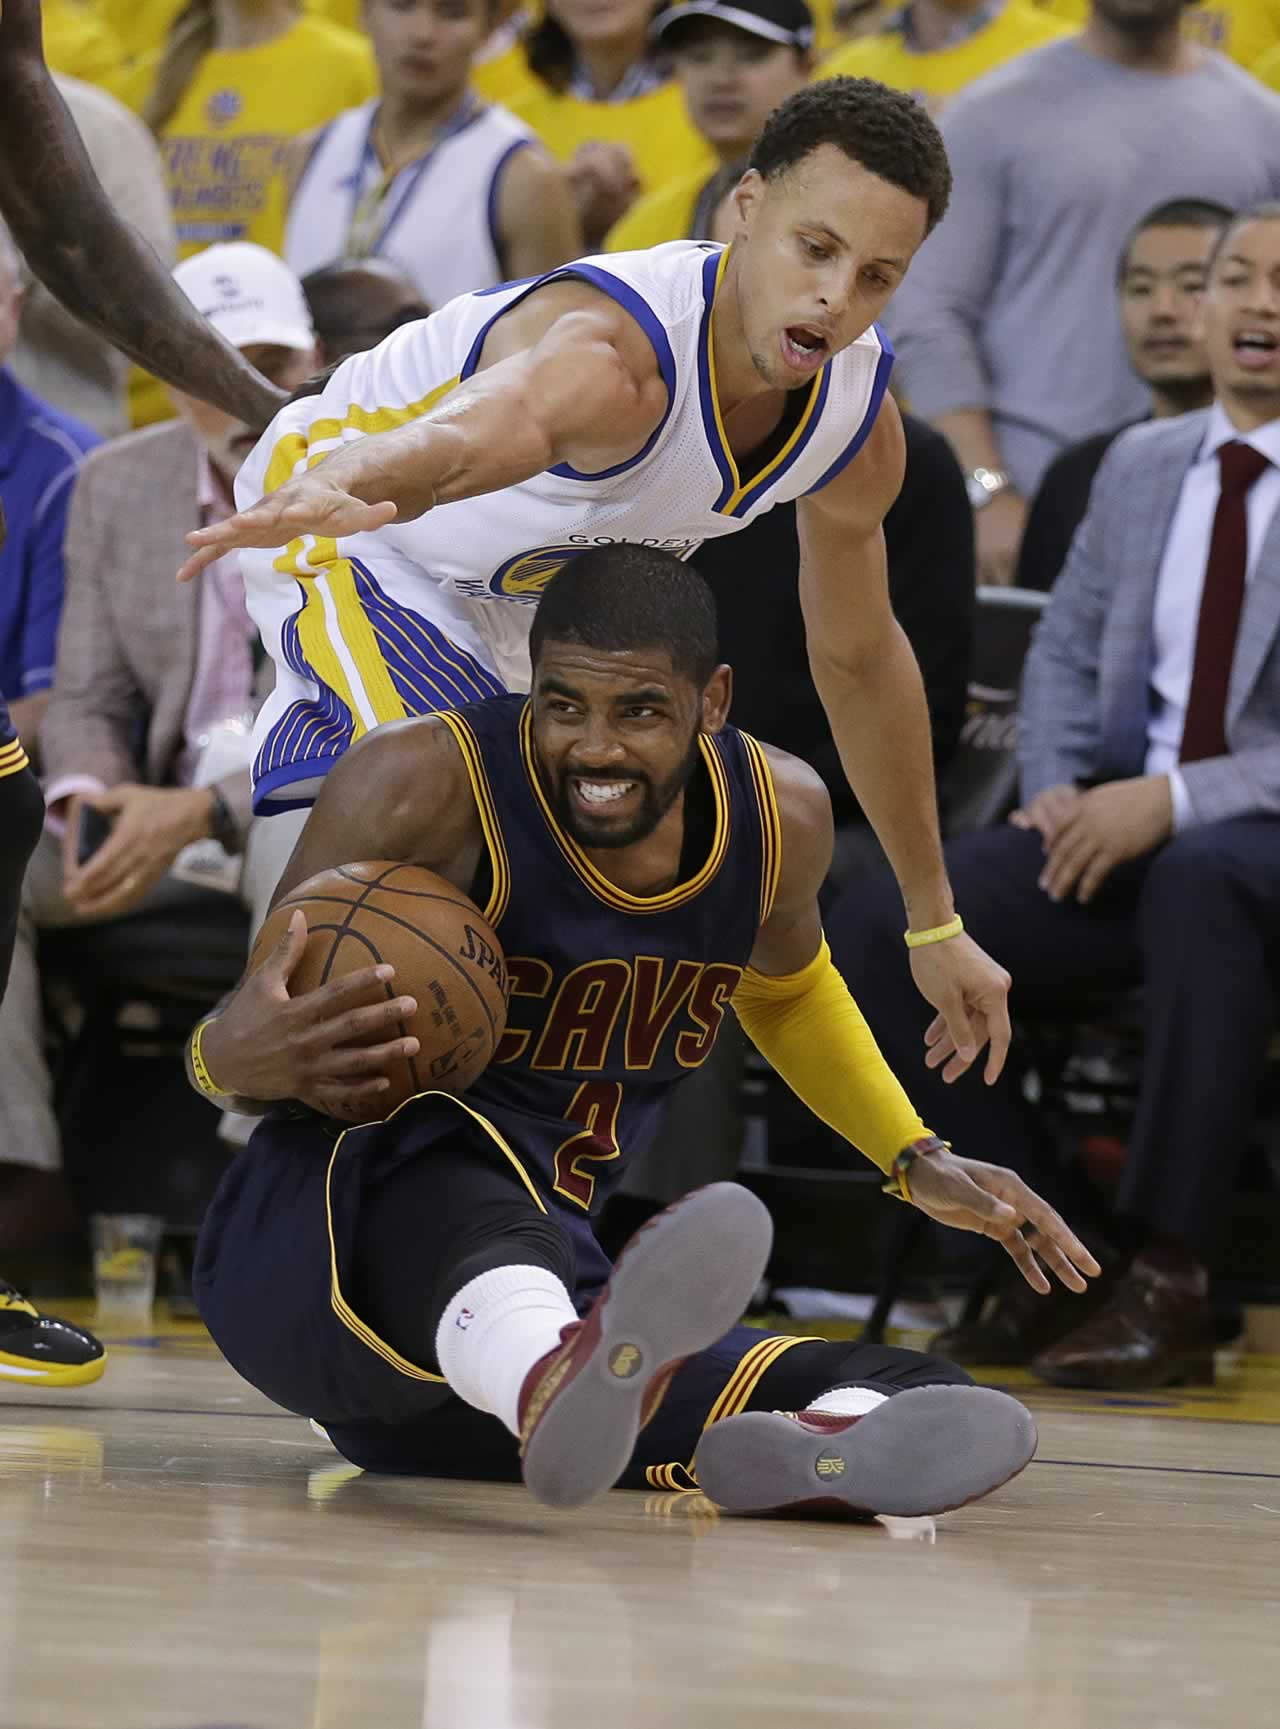 """<div class=""""meta image-caption""""><div class=""""origin-logo origin-image none""""><span>none</span></div><span class=""""caption-text"""">Cavaliers guard Kyrie Irving is guarded by Warriors guard Stephen Curry during Game 1 of basketball's NBA Finals in Oakland, Calif., Thursday, June 4, 2015. (AP Photo/Ben Margot)</span></div>"""